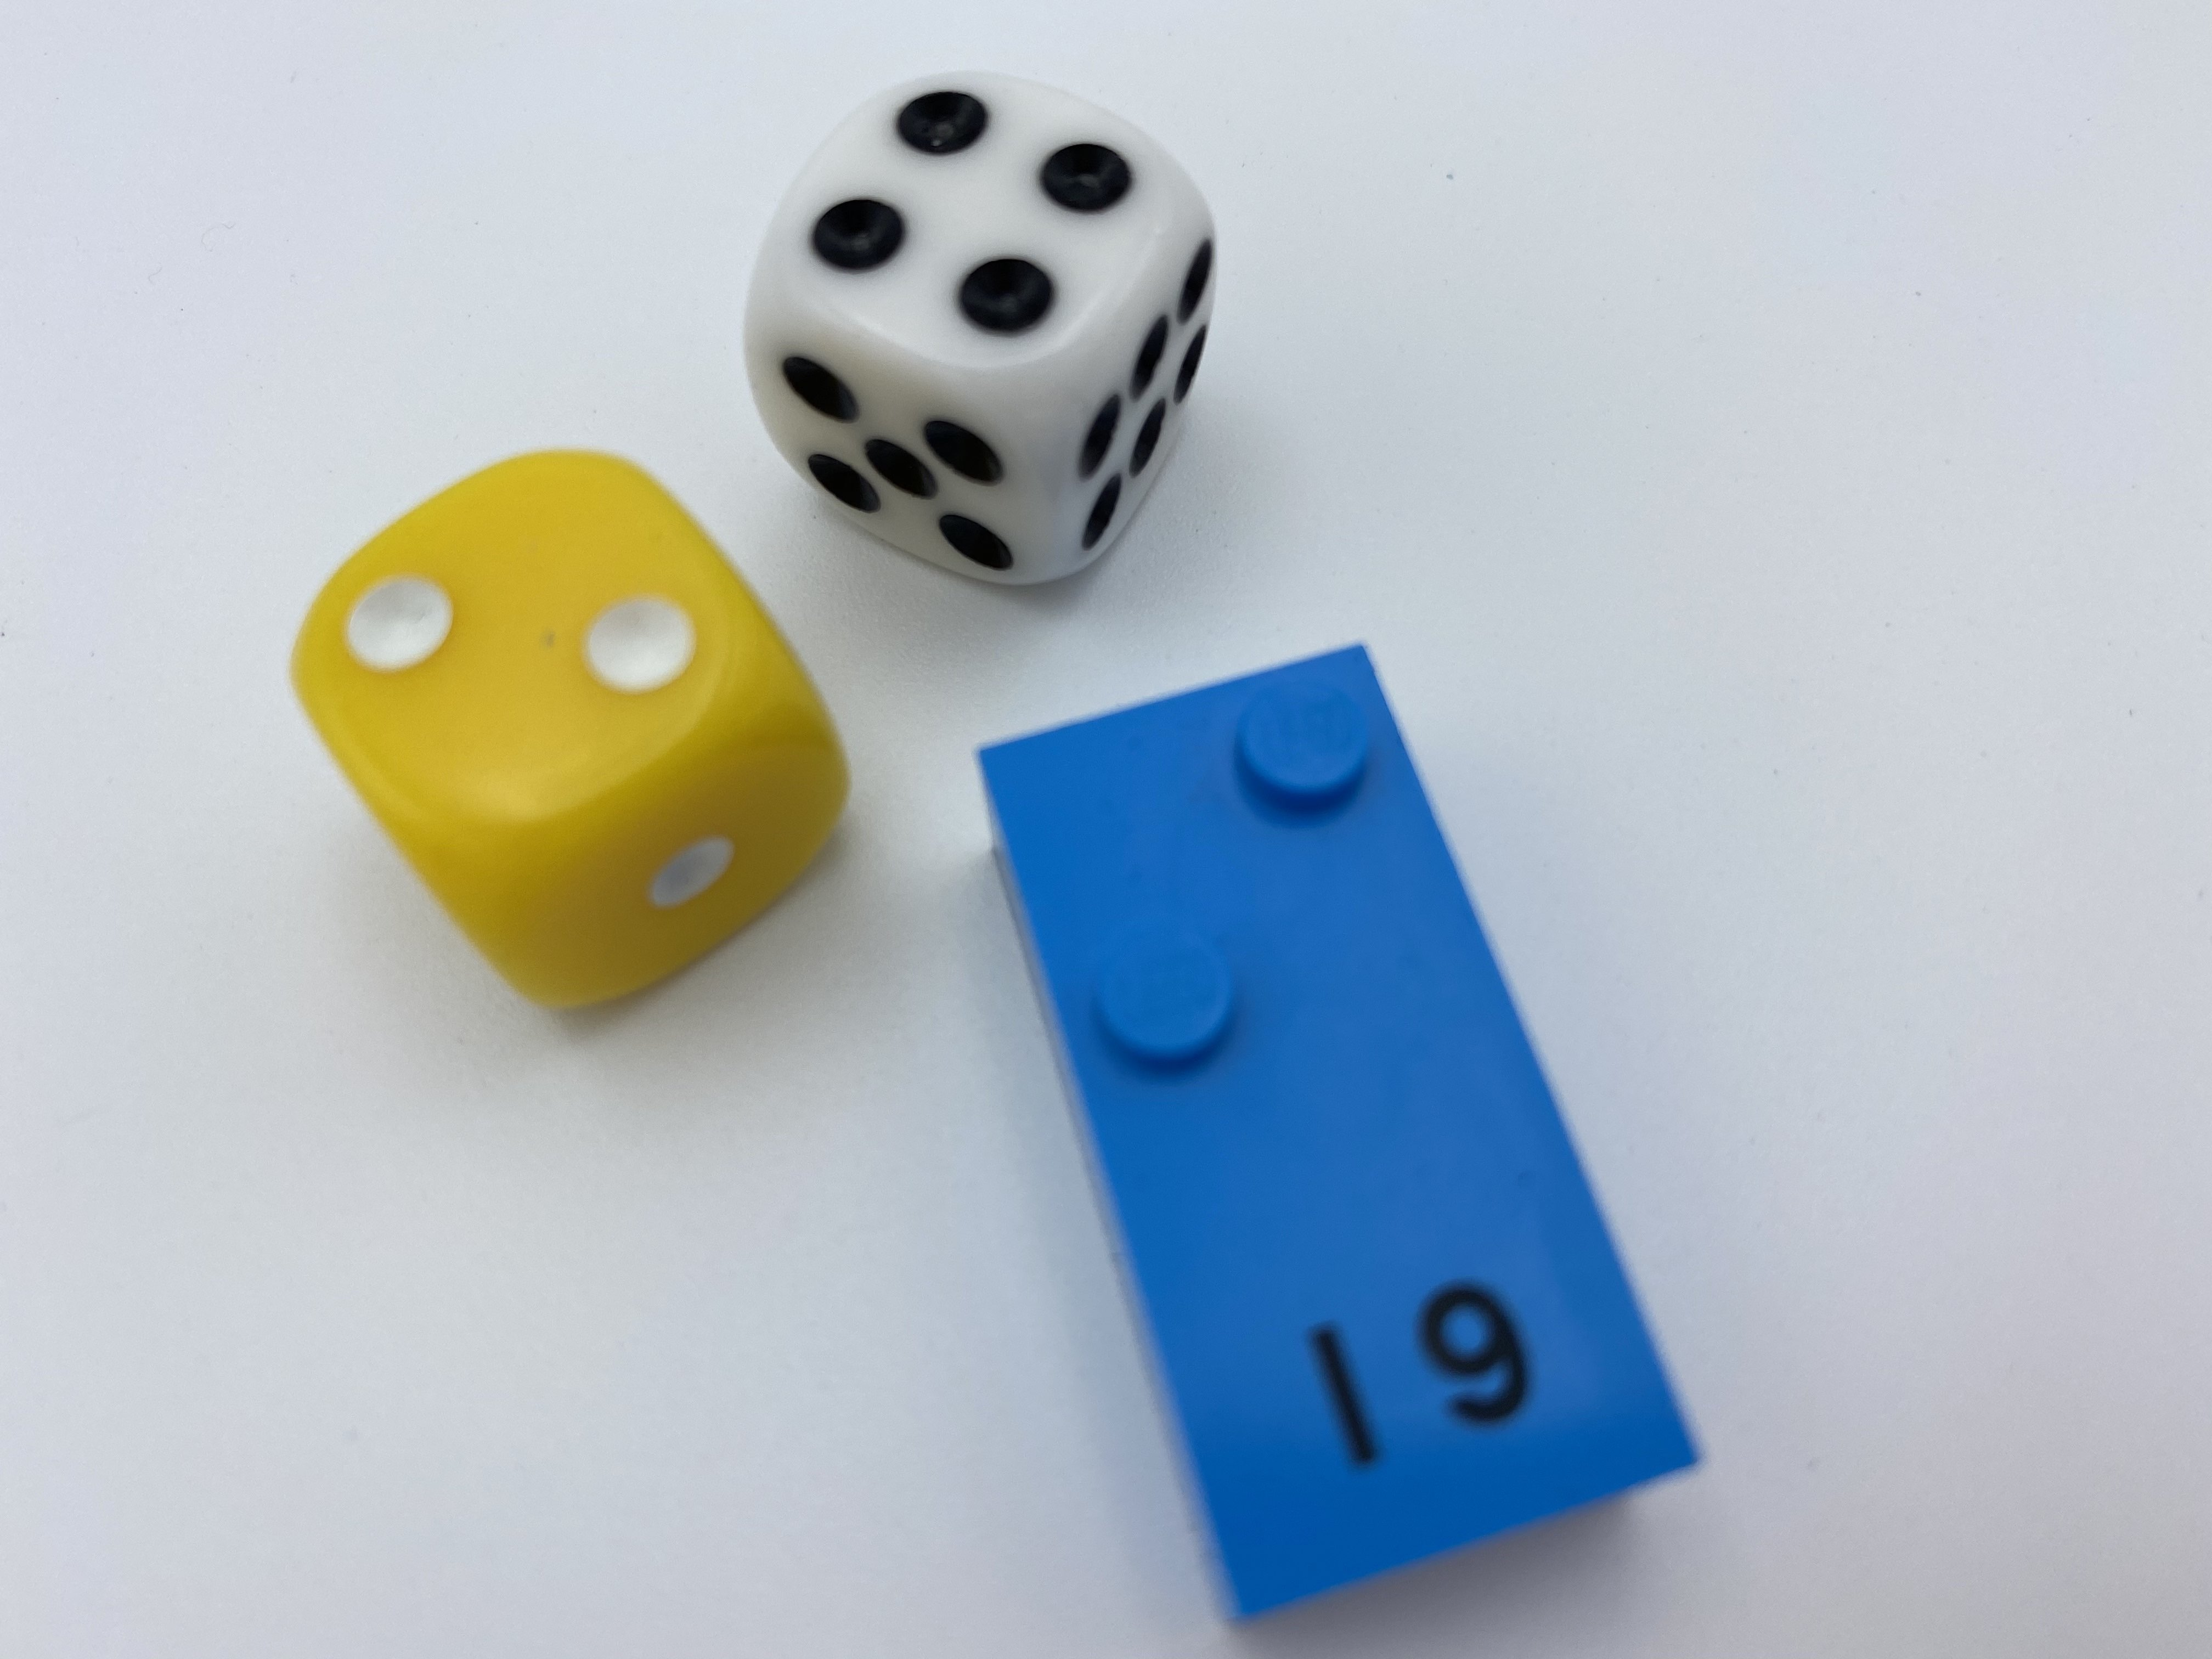 Dice rolls: 2 and 4, letter brick i.